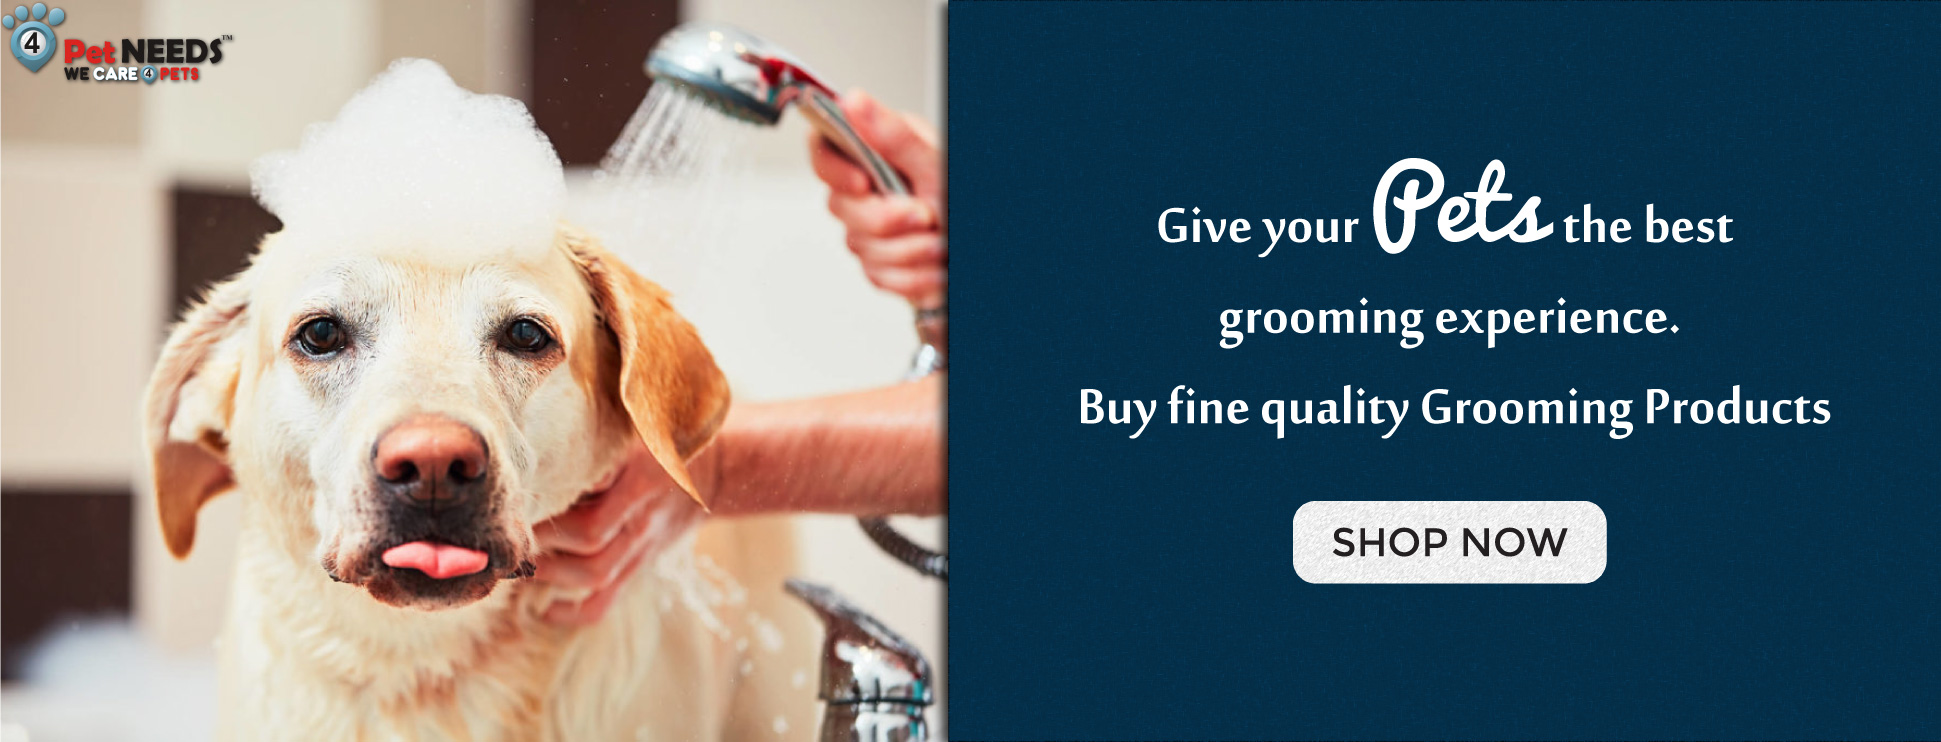 Grooming-Banner-main-website5.jpg